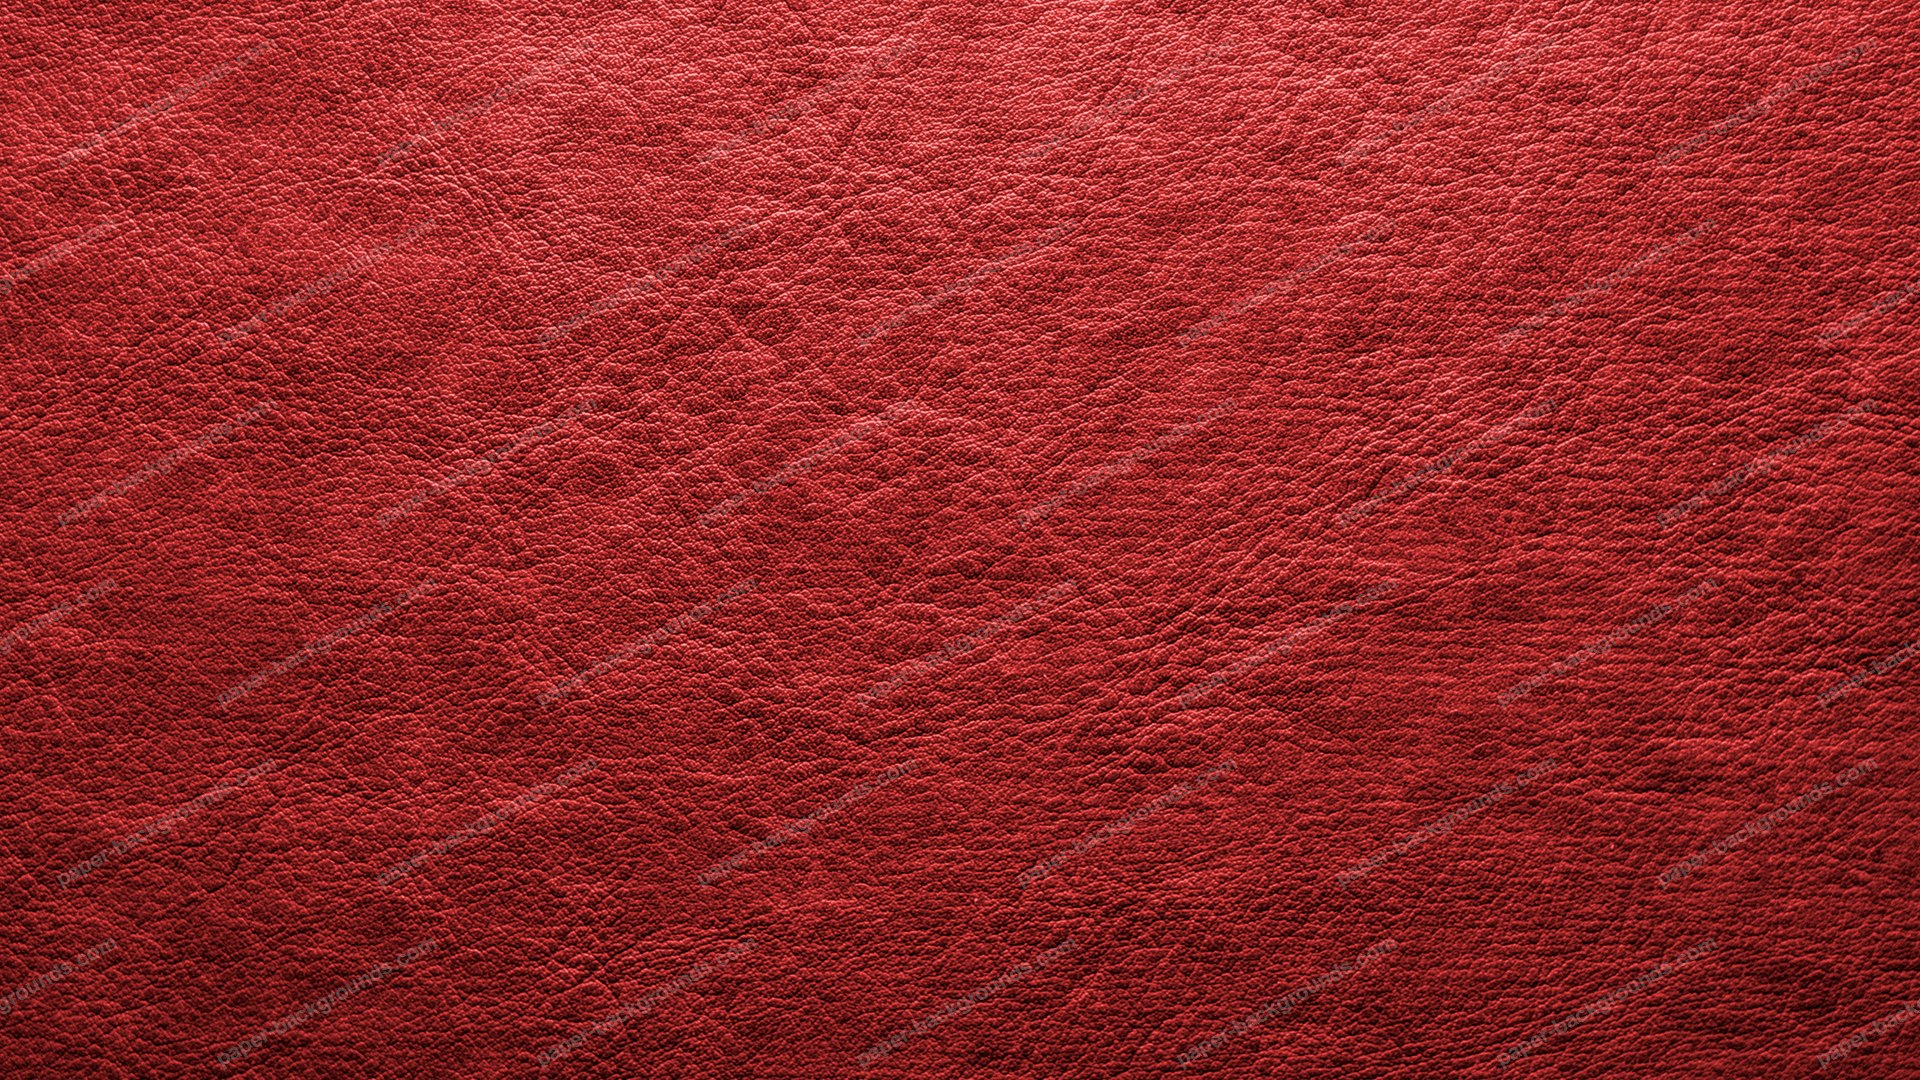 Paper Backgrounds Abstract Red Leather Background